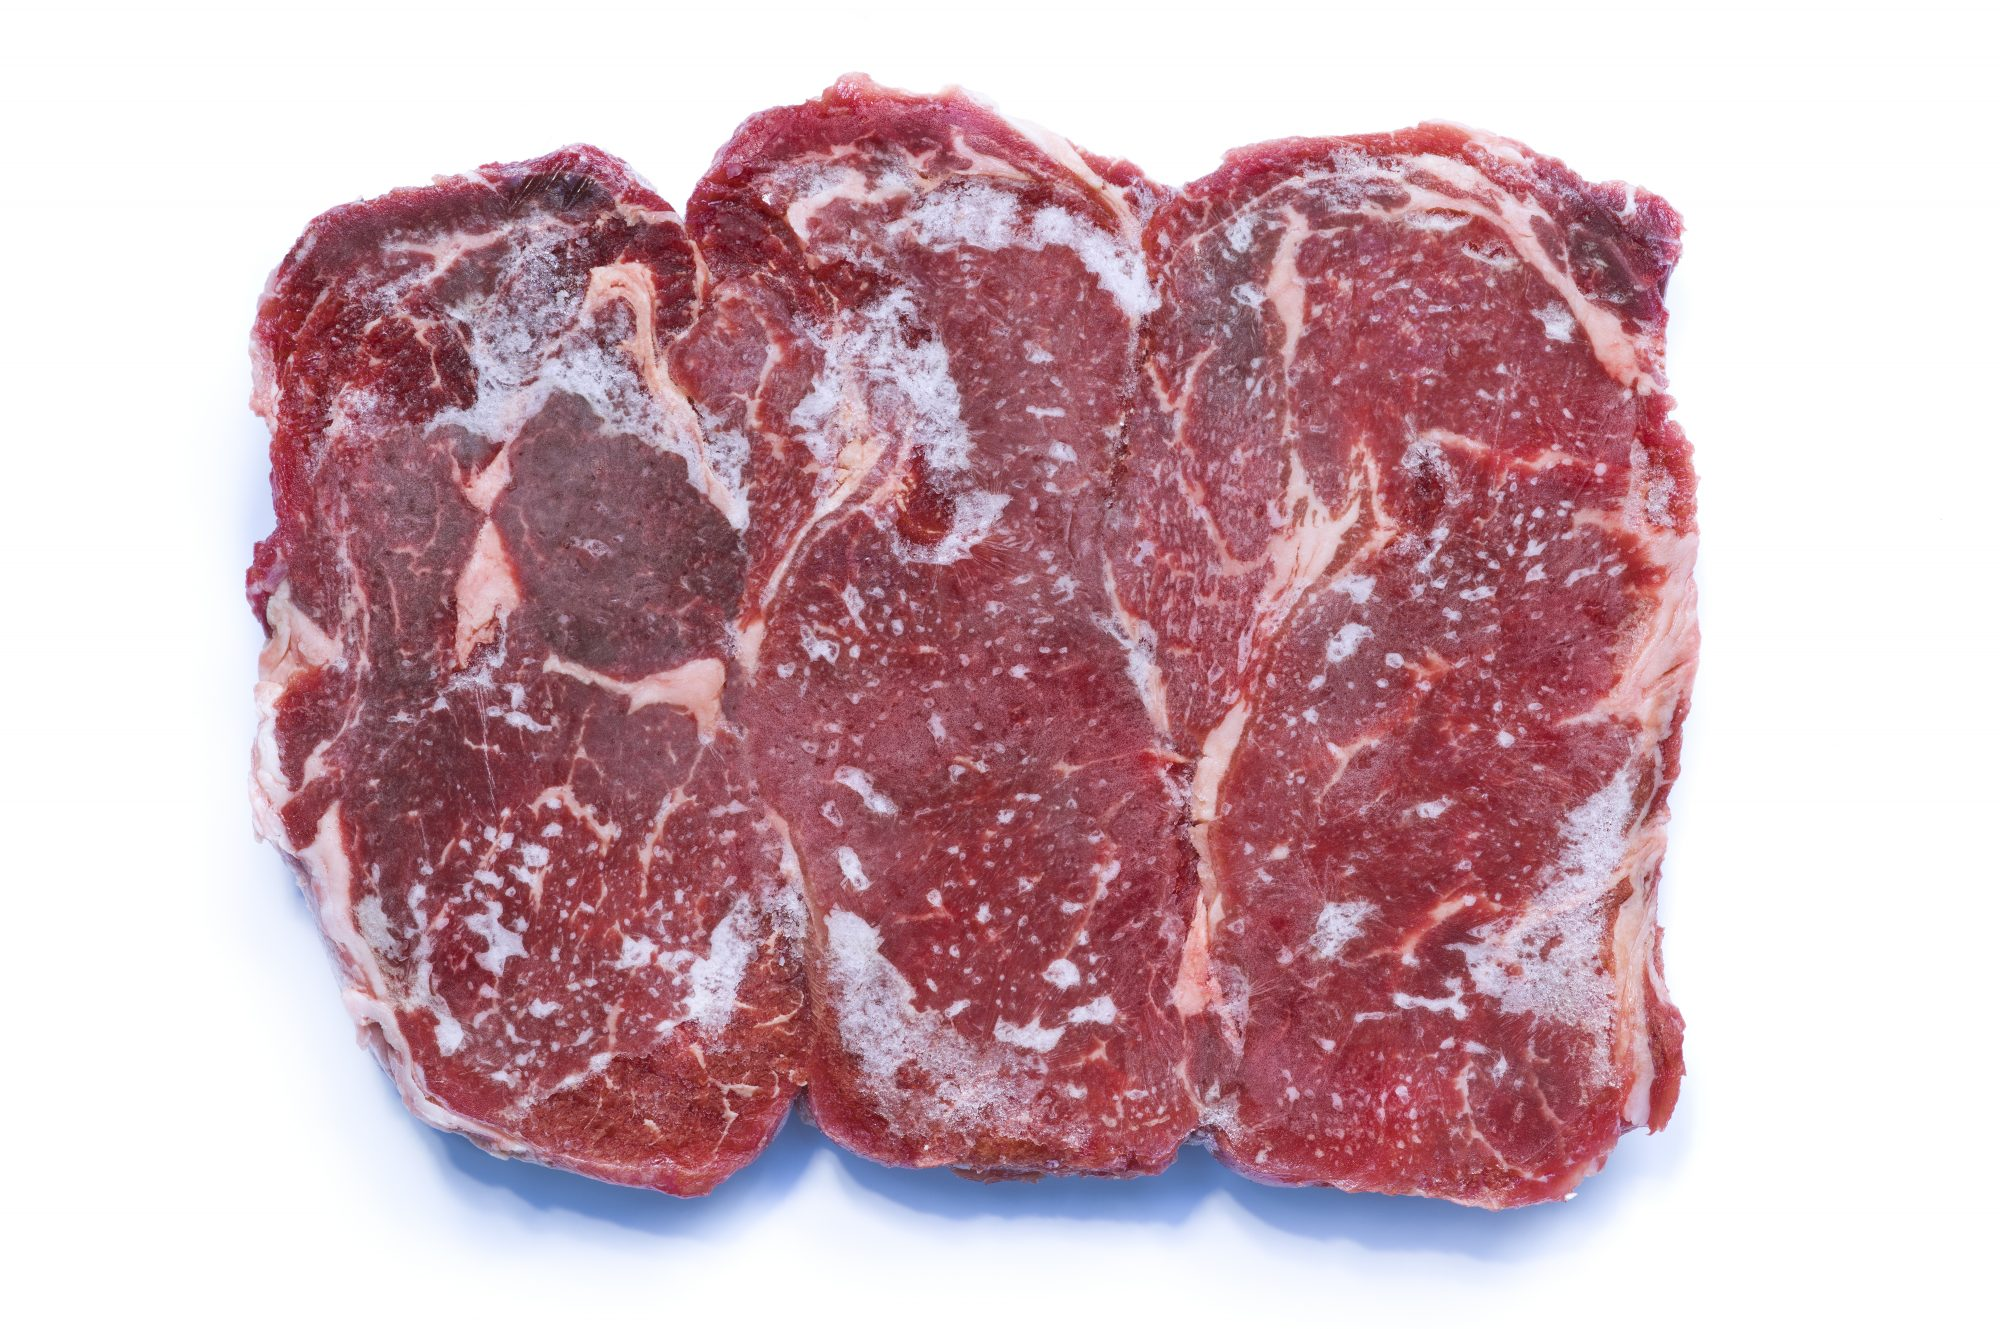 getty-frozen-meat-image